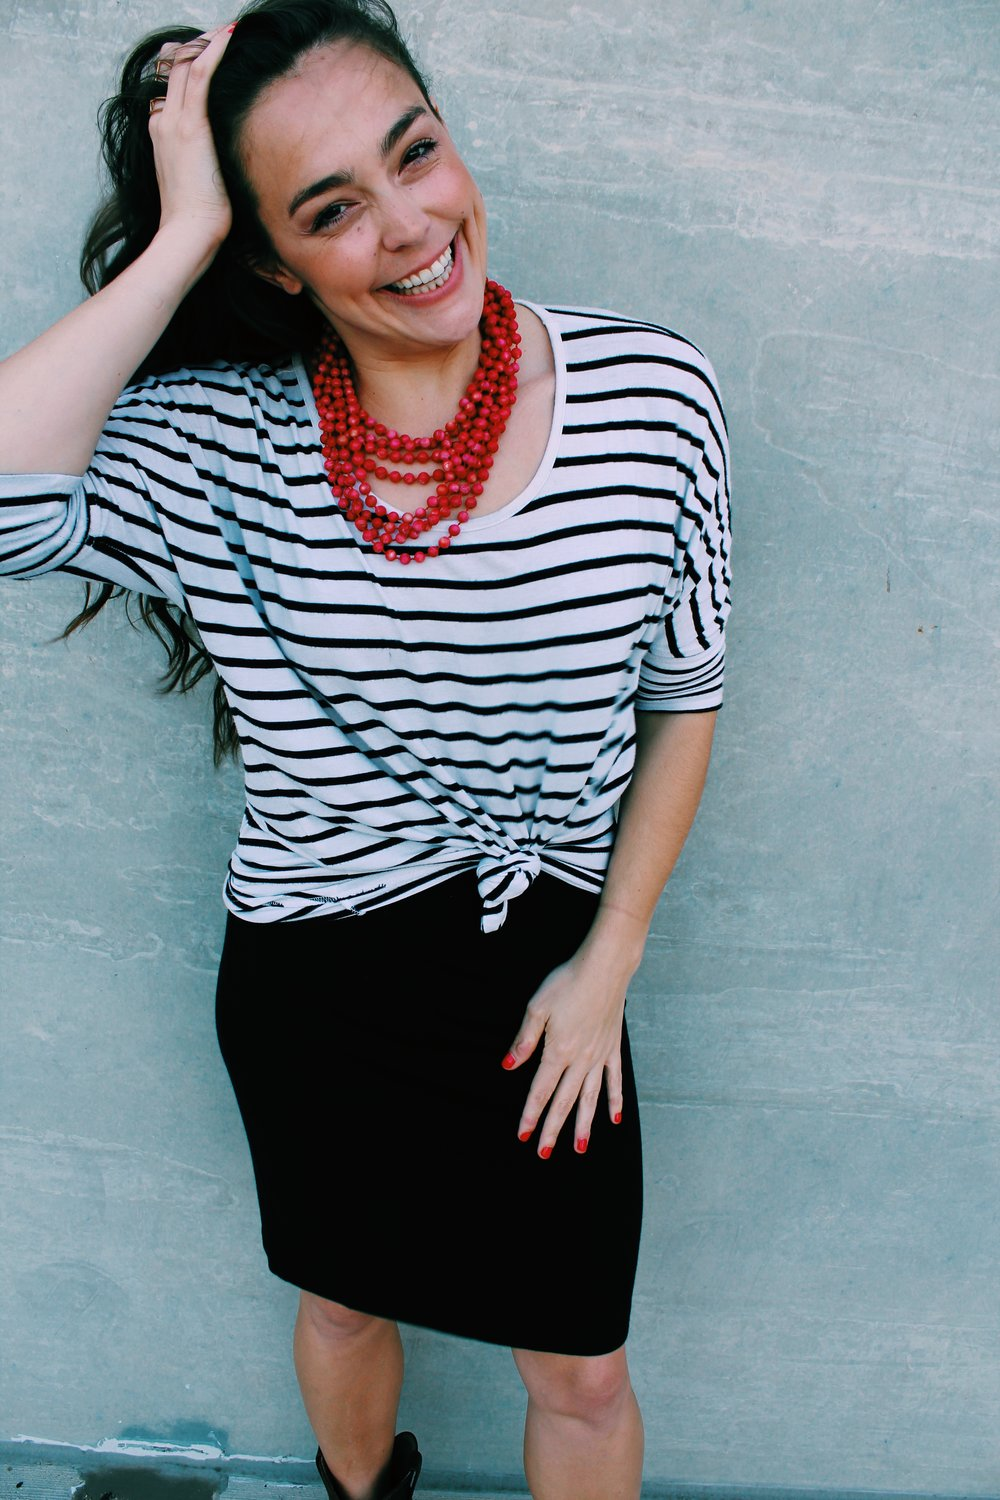 Greer Image Consulting - Blog - The Greer Guide to Style - Simple Styling Tricks - Statement Necklace - Red Necklace - Red - Fashion - Style - Statement Style